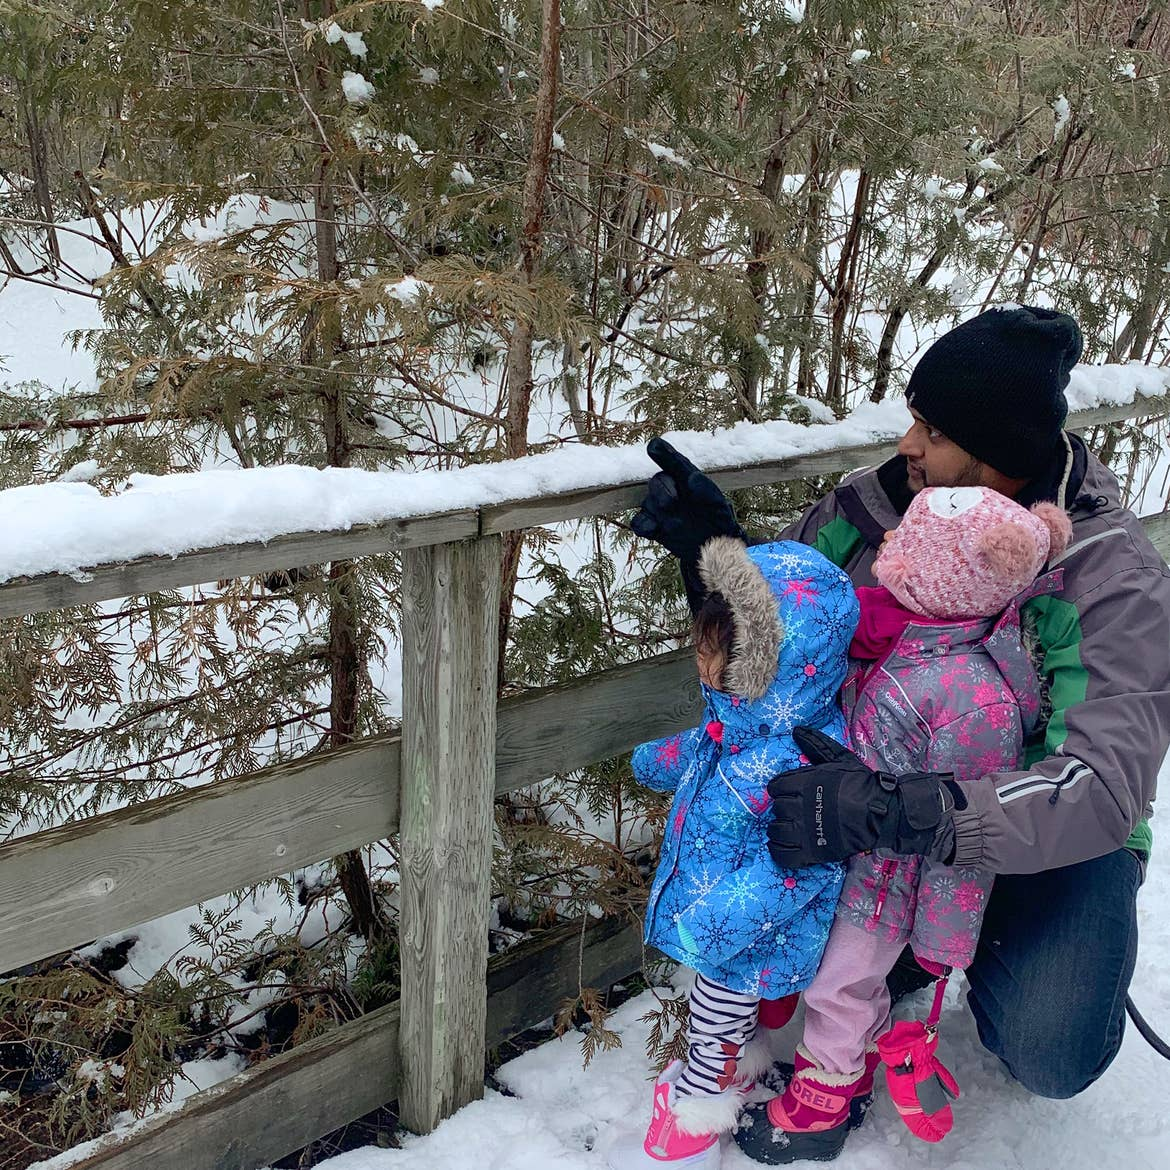 Rohan points out some greenery to Amarra and Myrra in the snow.